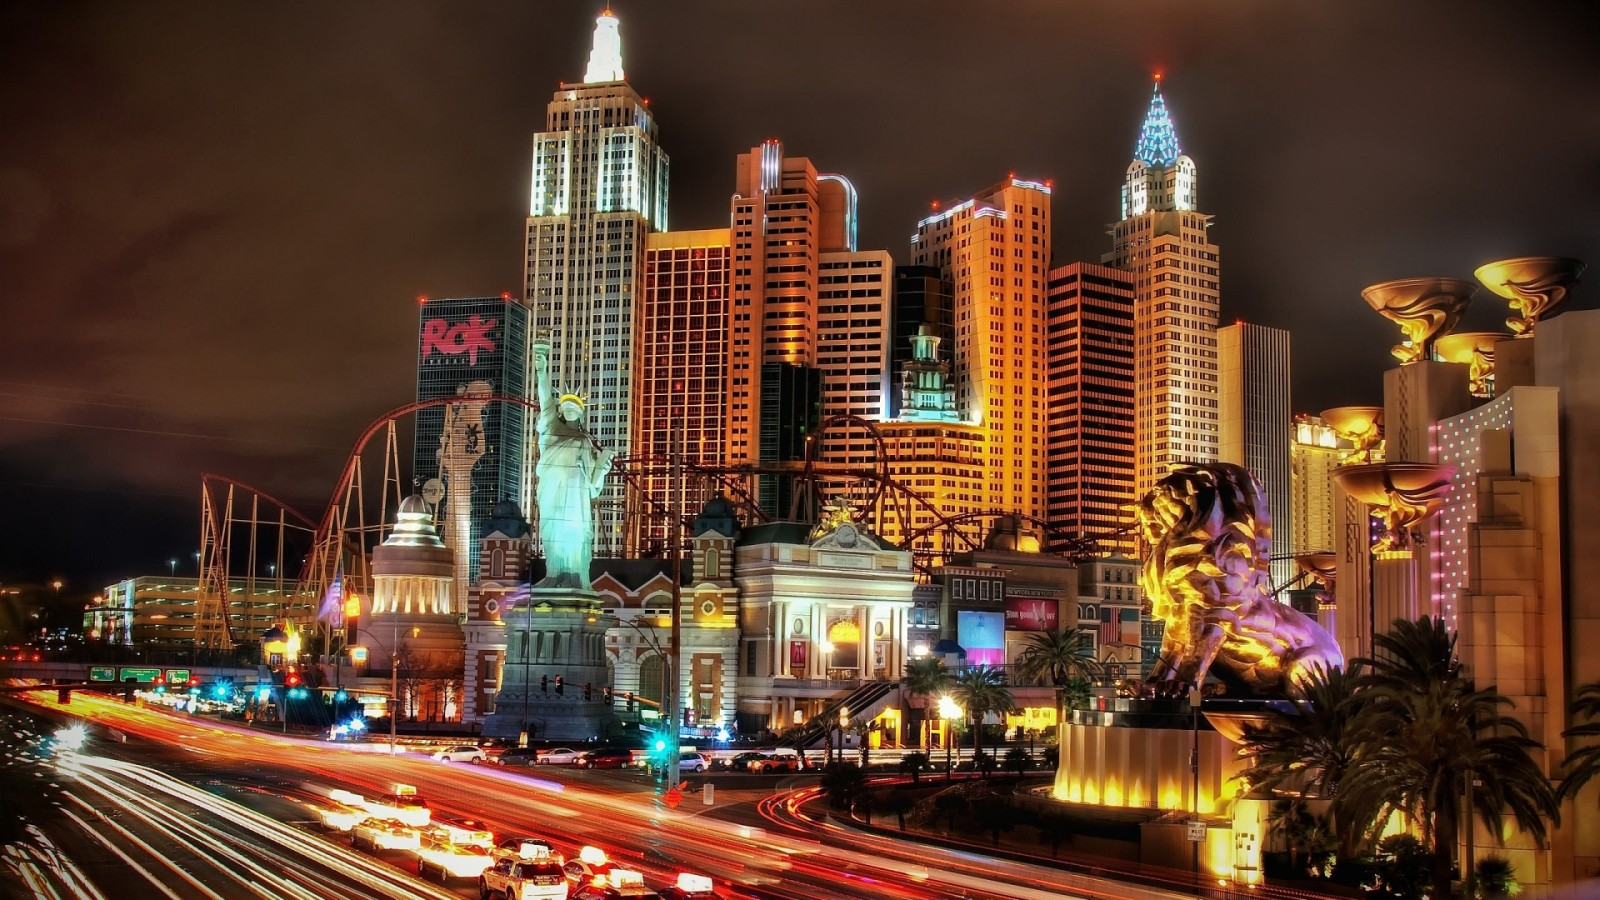 Las Vegas New York Night HD Wallpaper of City   hdwallpaper2013com 1600x900